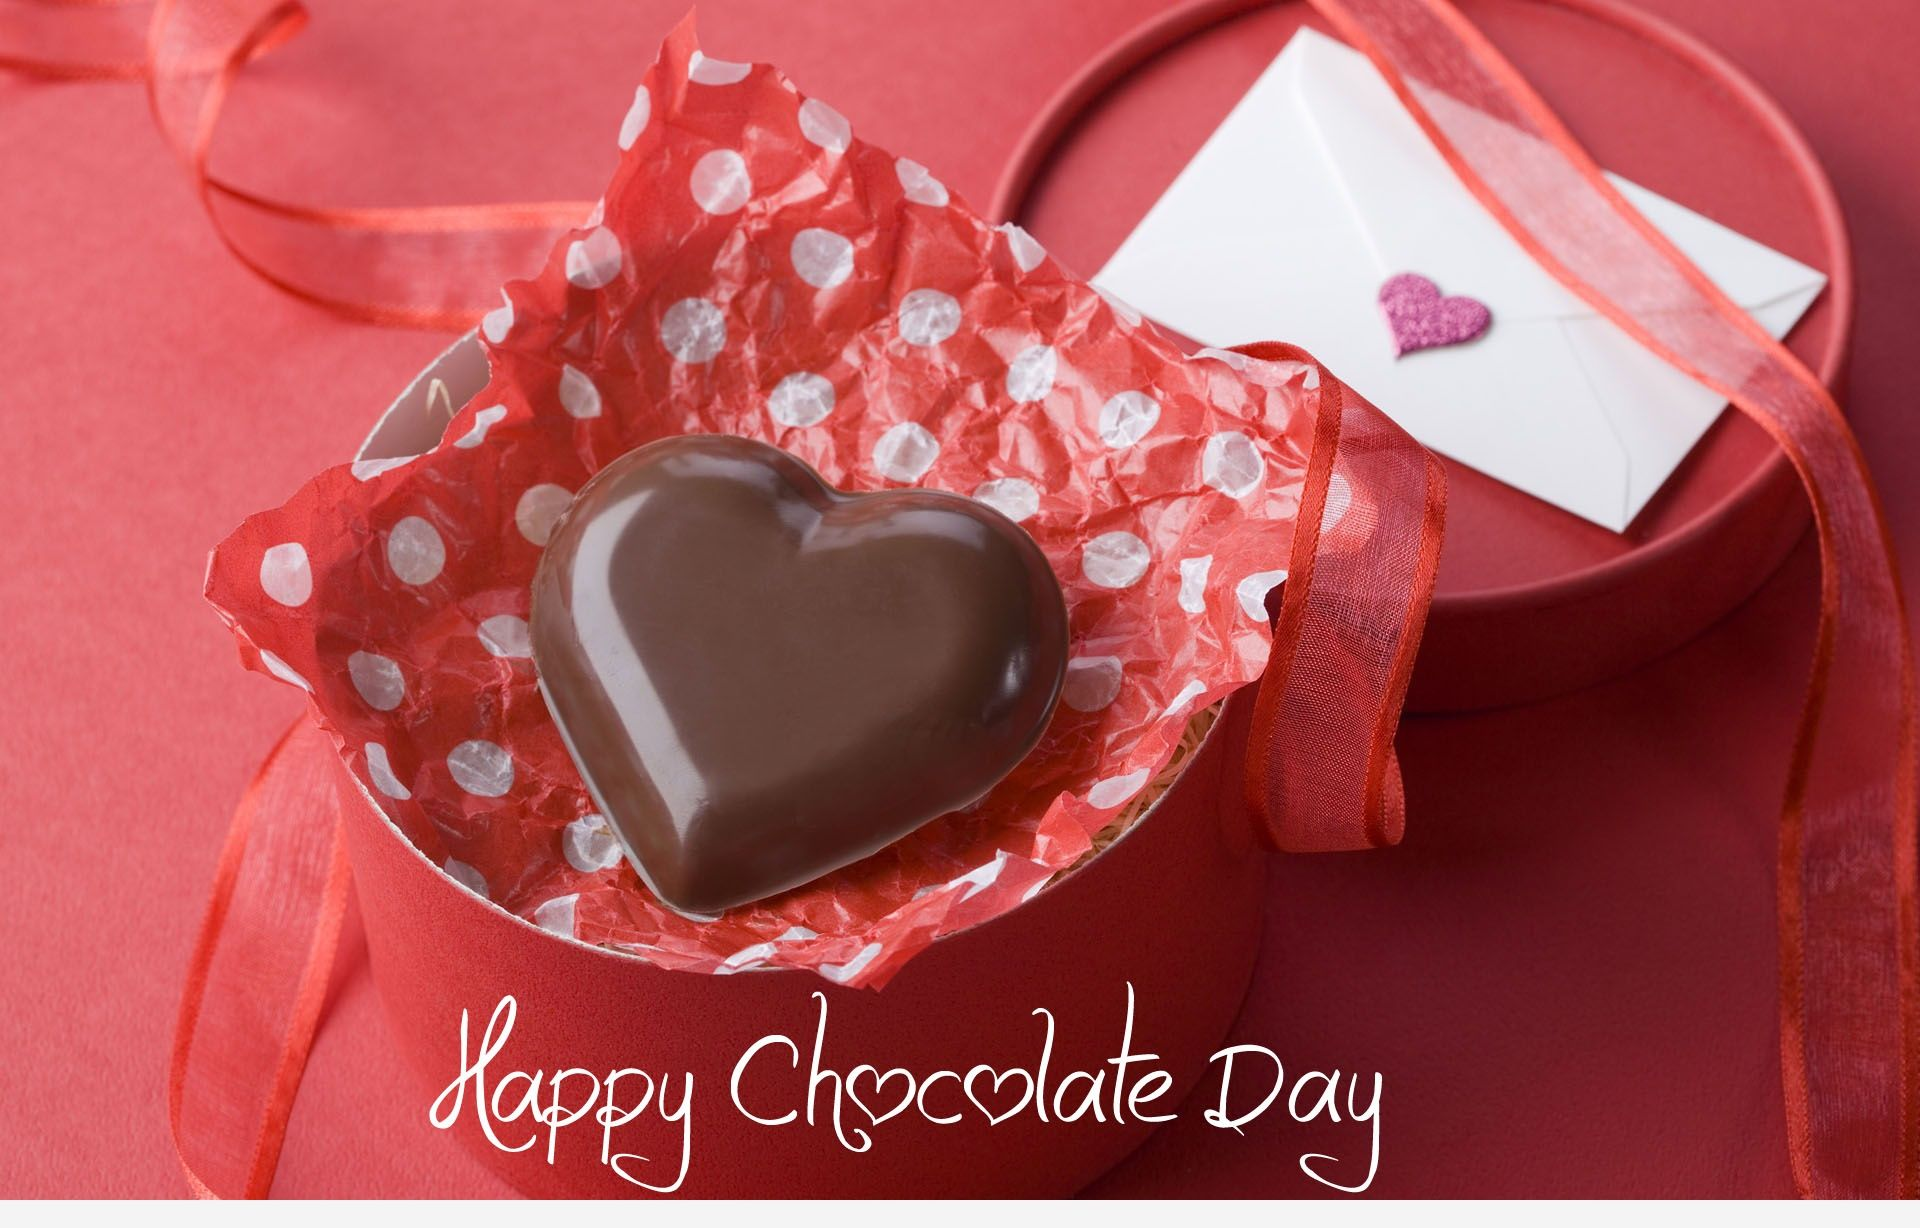 Chocolate Day Wallpaper Download Http Desktopwallpaper Info Chocolate Day Wallpaper Download 4655 Chocolate Download Wallpa Shokolad Podarki Korobochki Happy chocolate day 2021 pics download